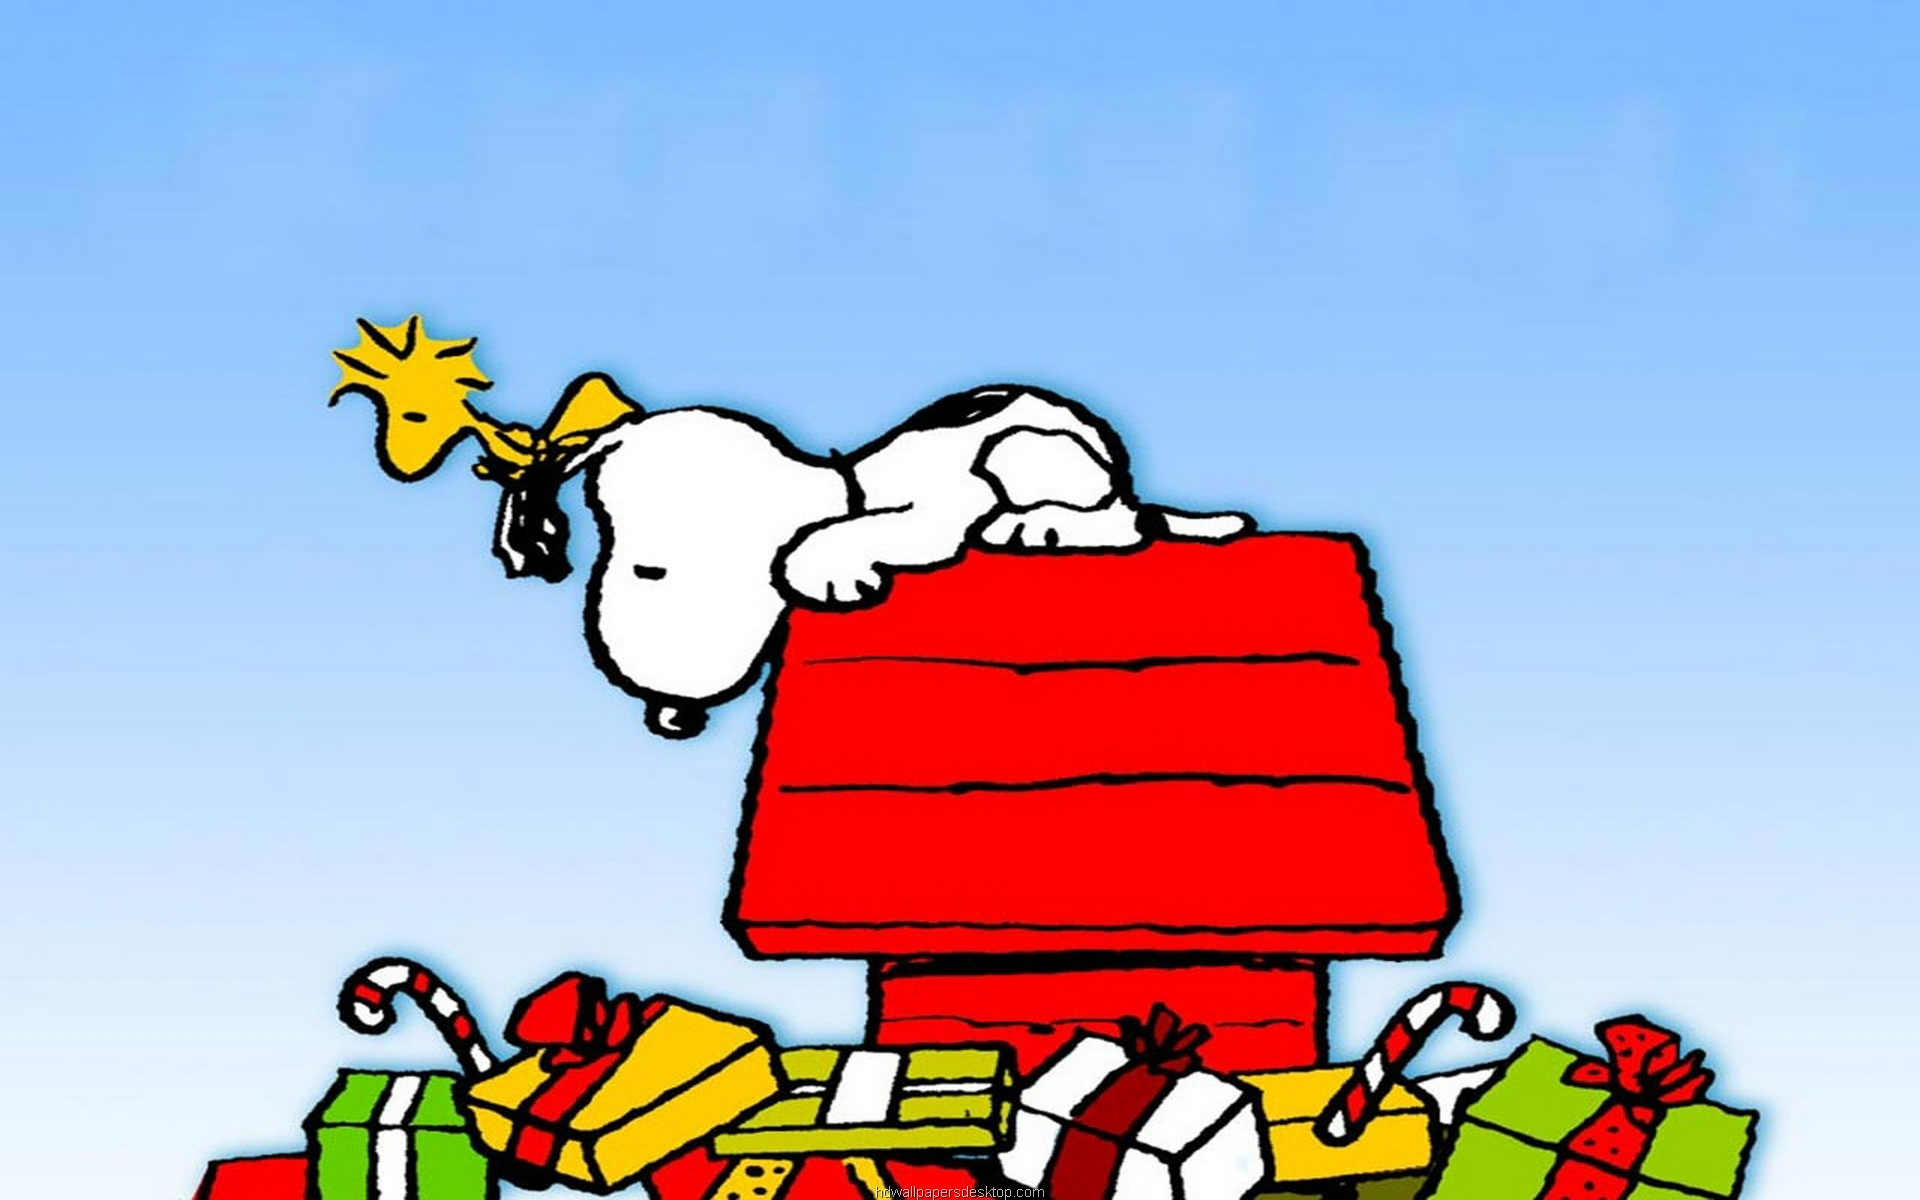 snoopy wallpaper iphone 6 plus